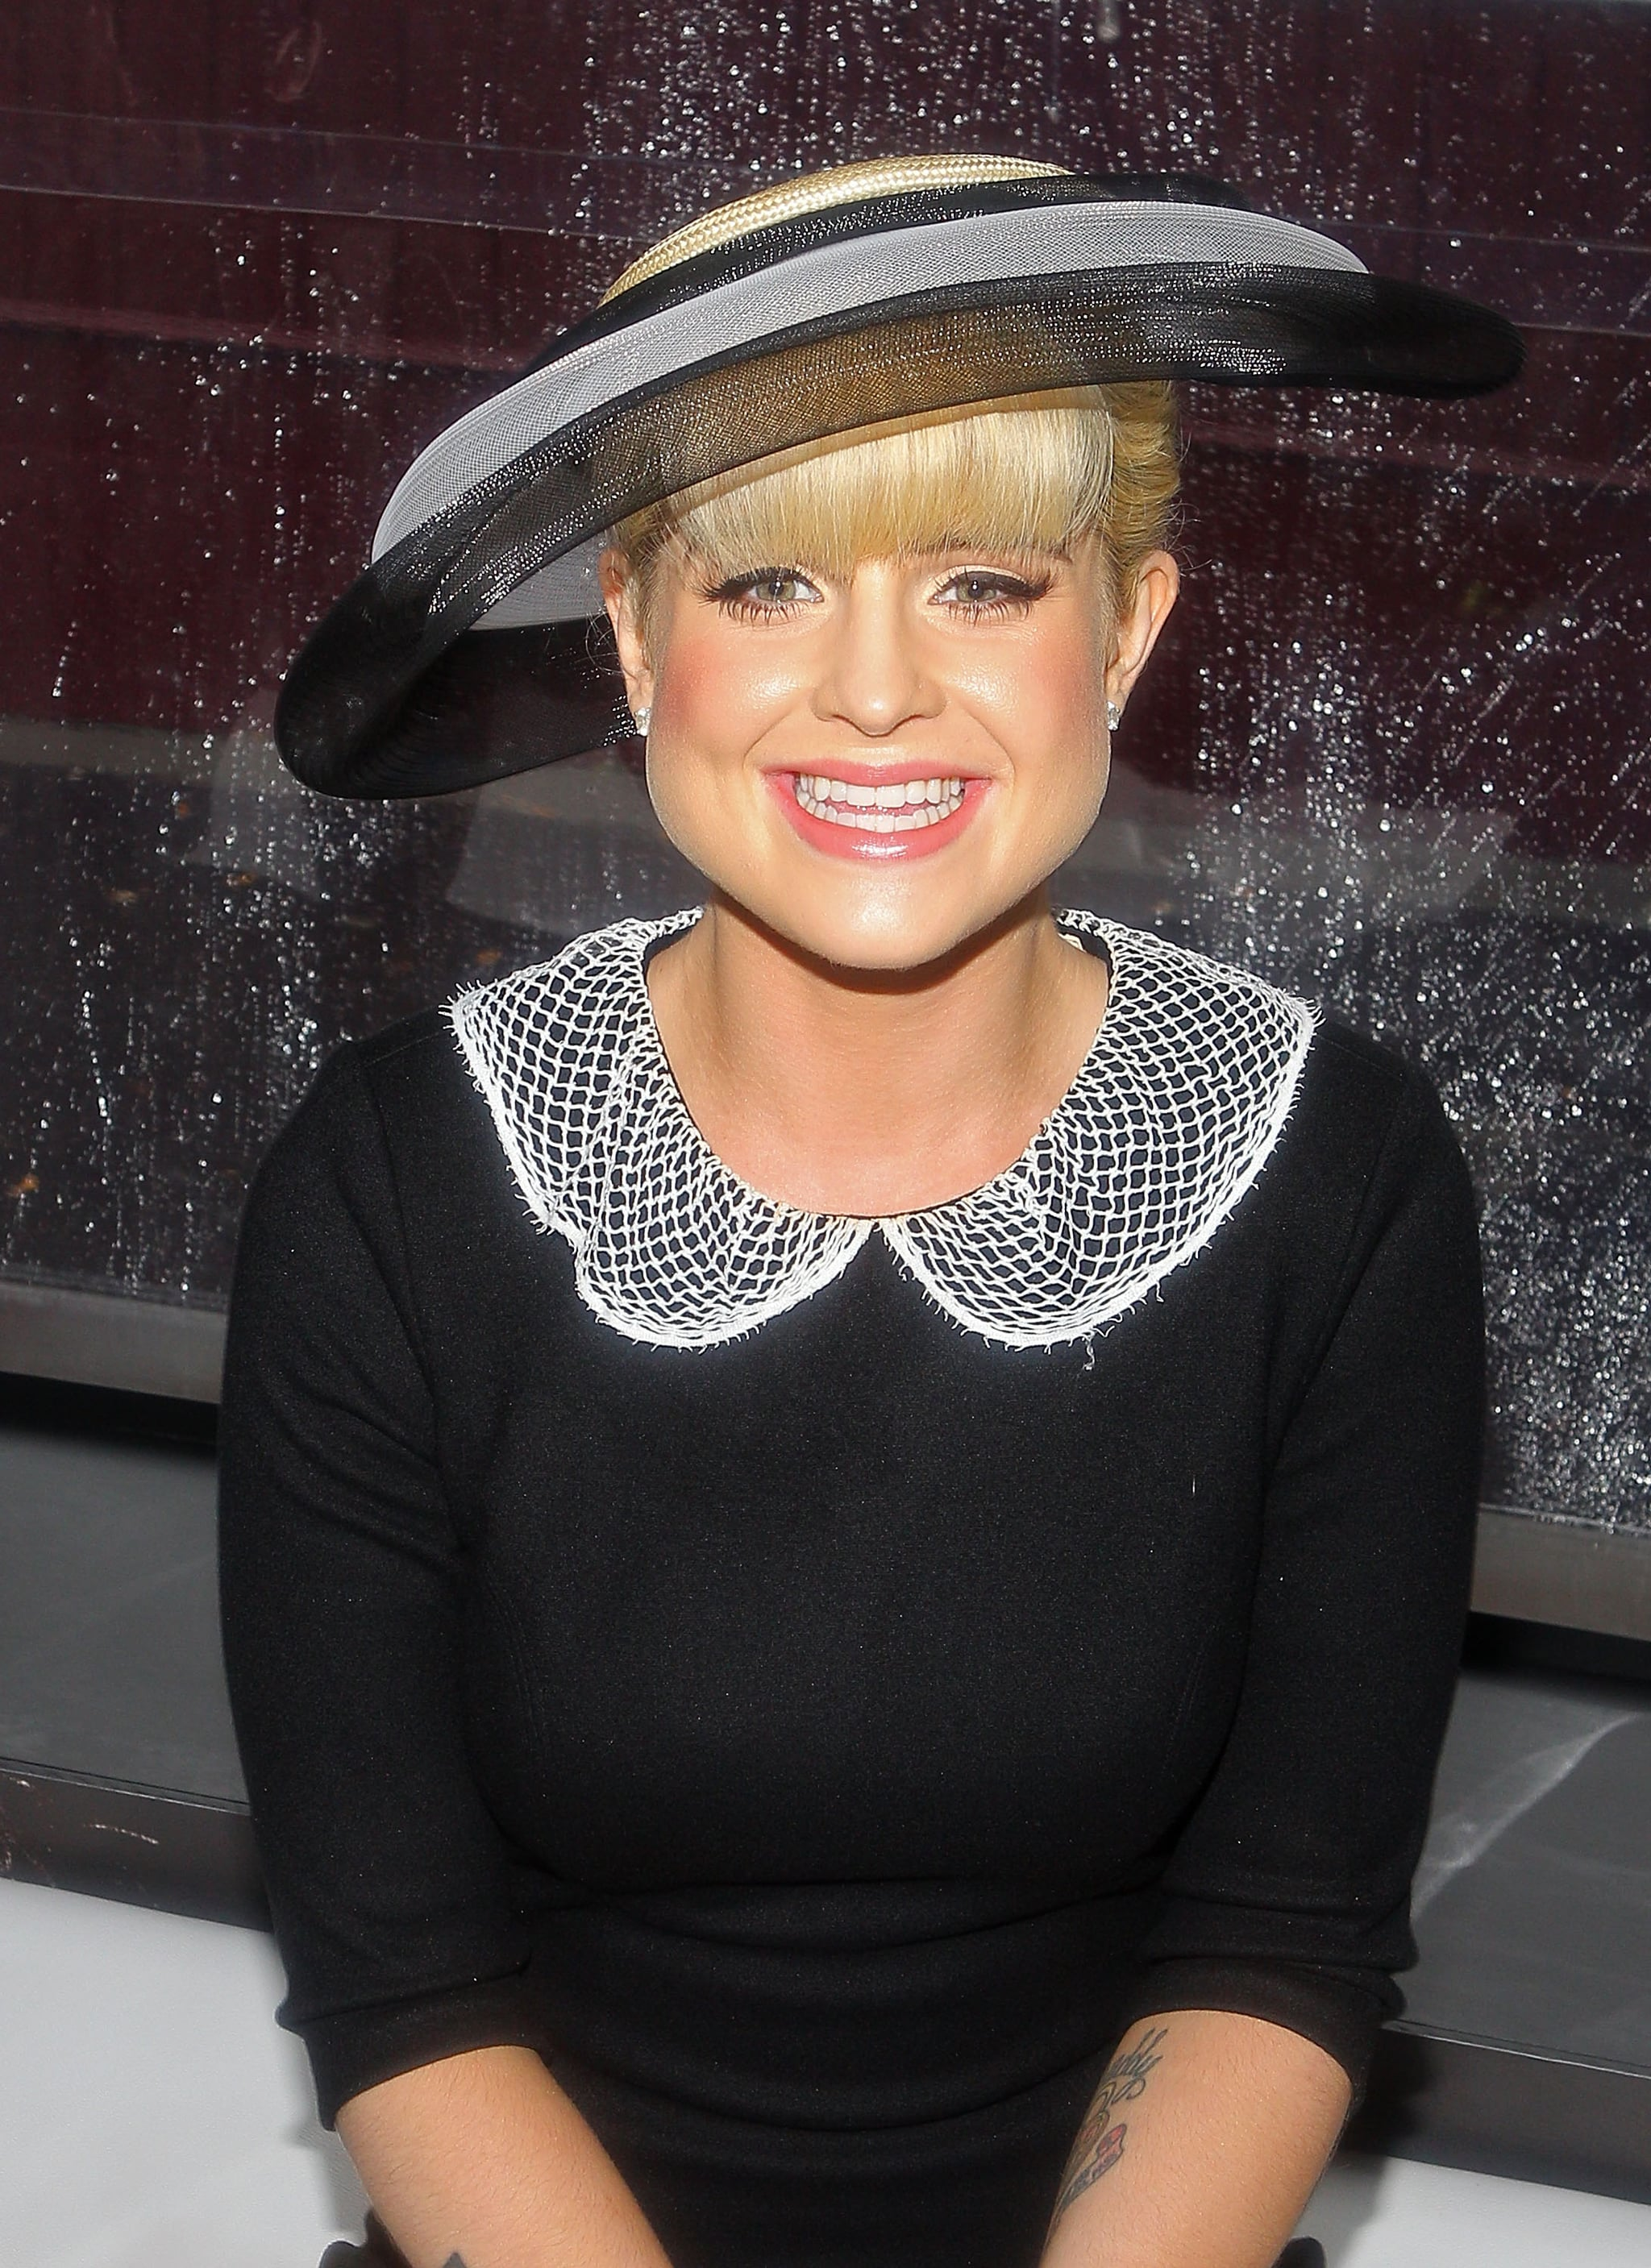 All smiles Kelly. Love that peter pan collar!